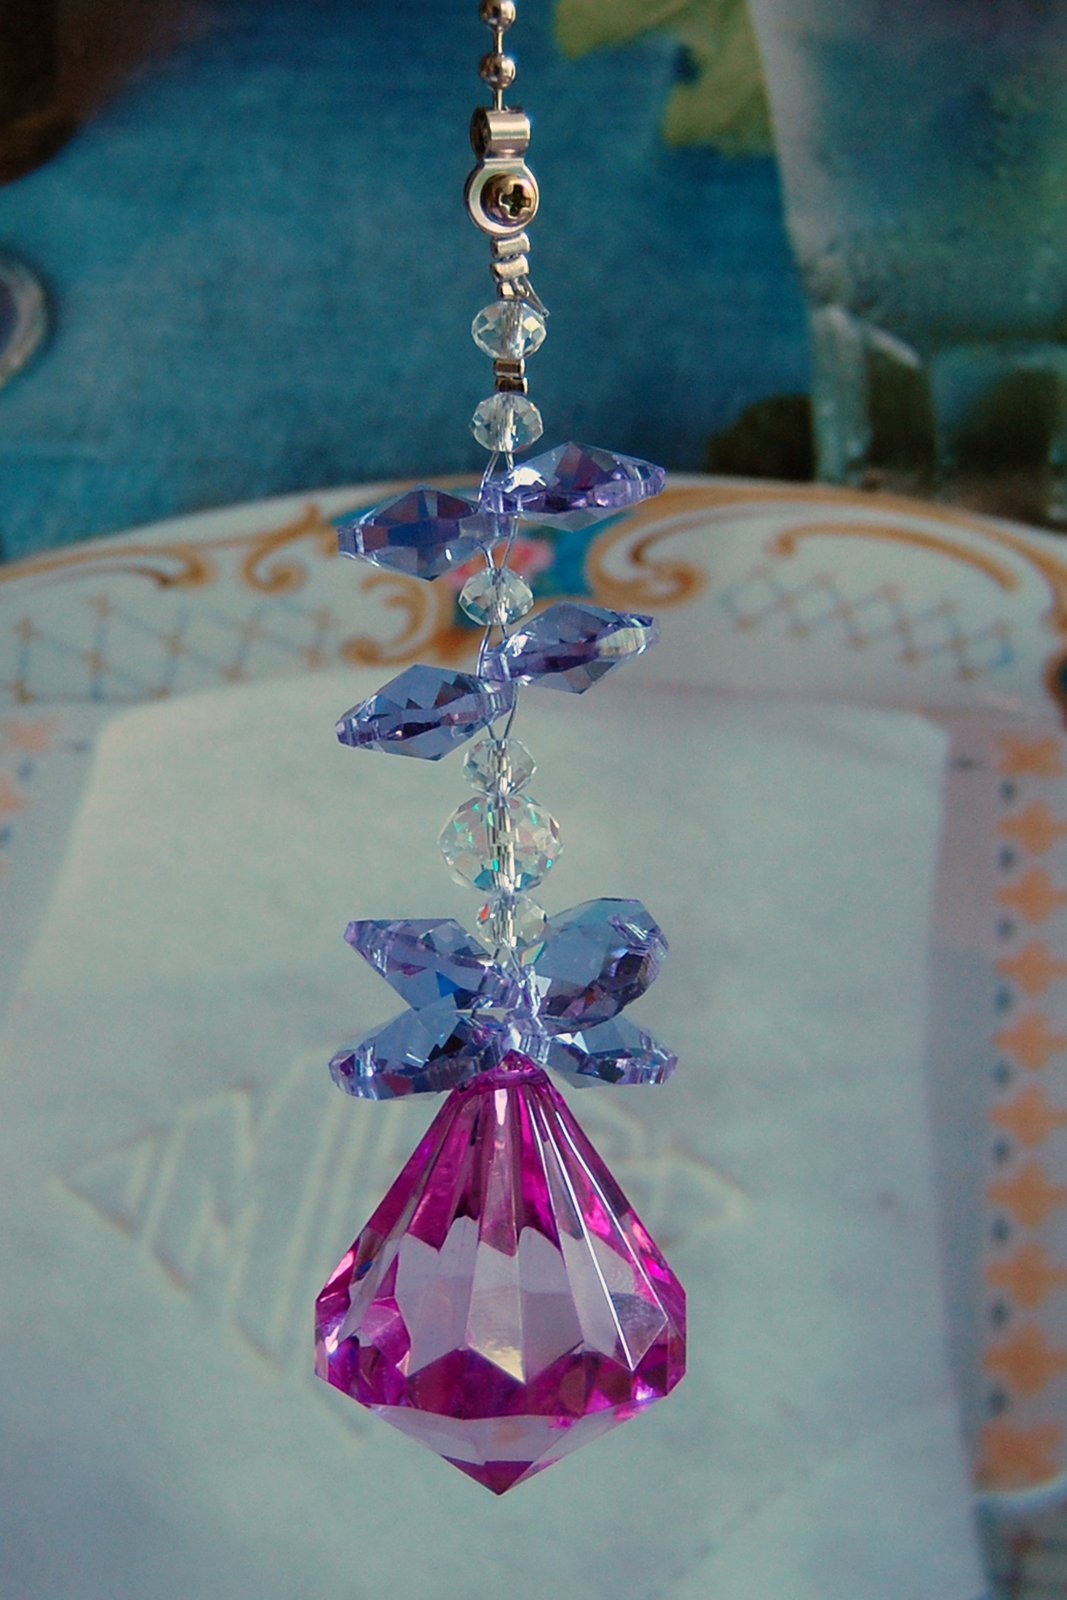 2 of Lilac Acrylic Crystal Diamond Ceiling Lighting Fan Pulls Chain by Blessinglight USA